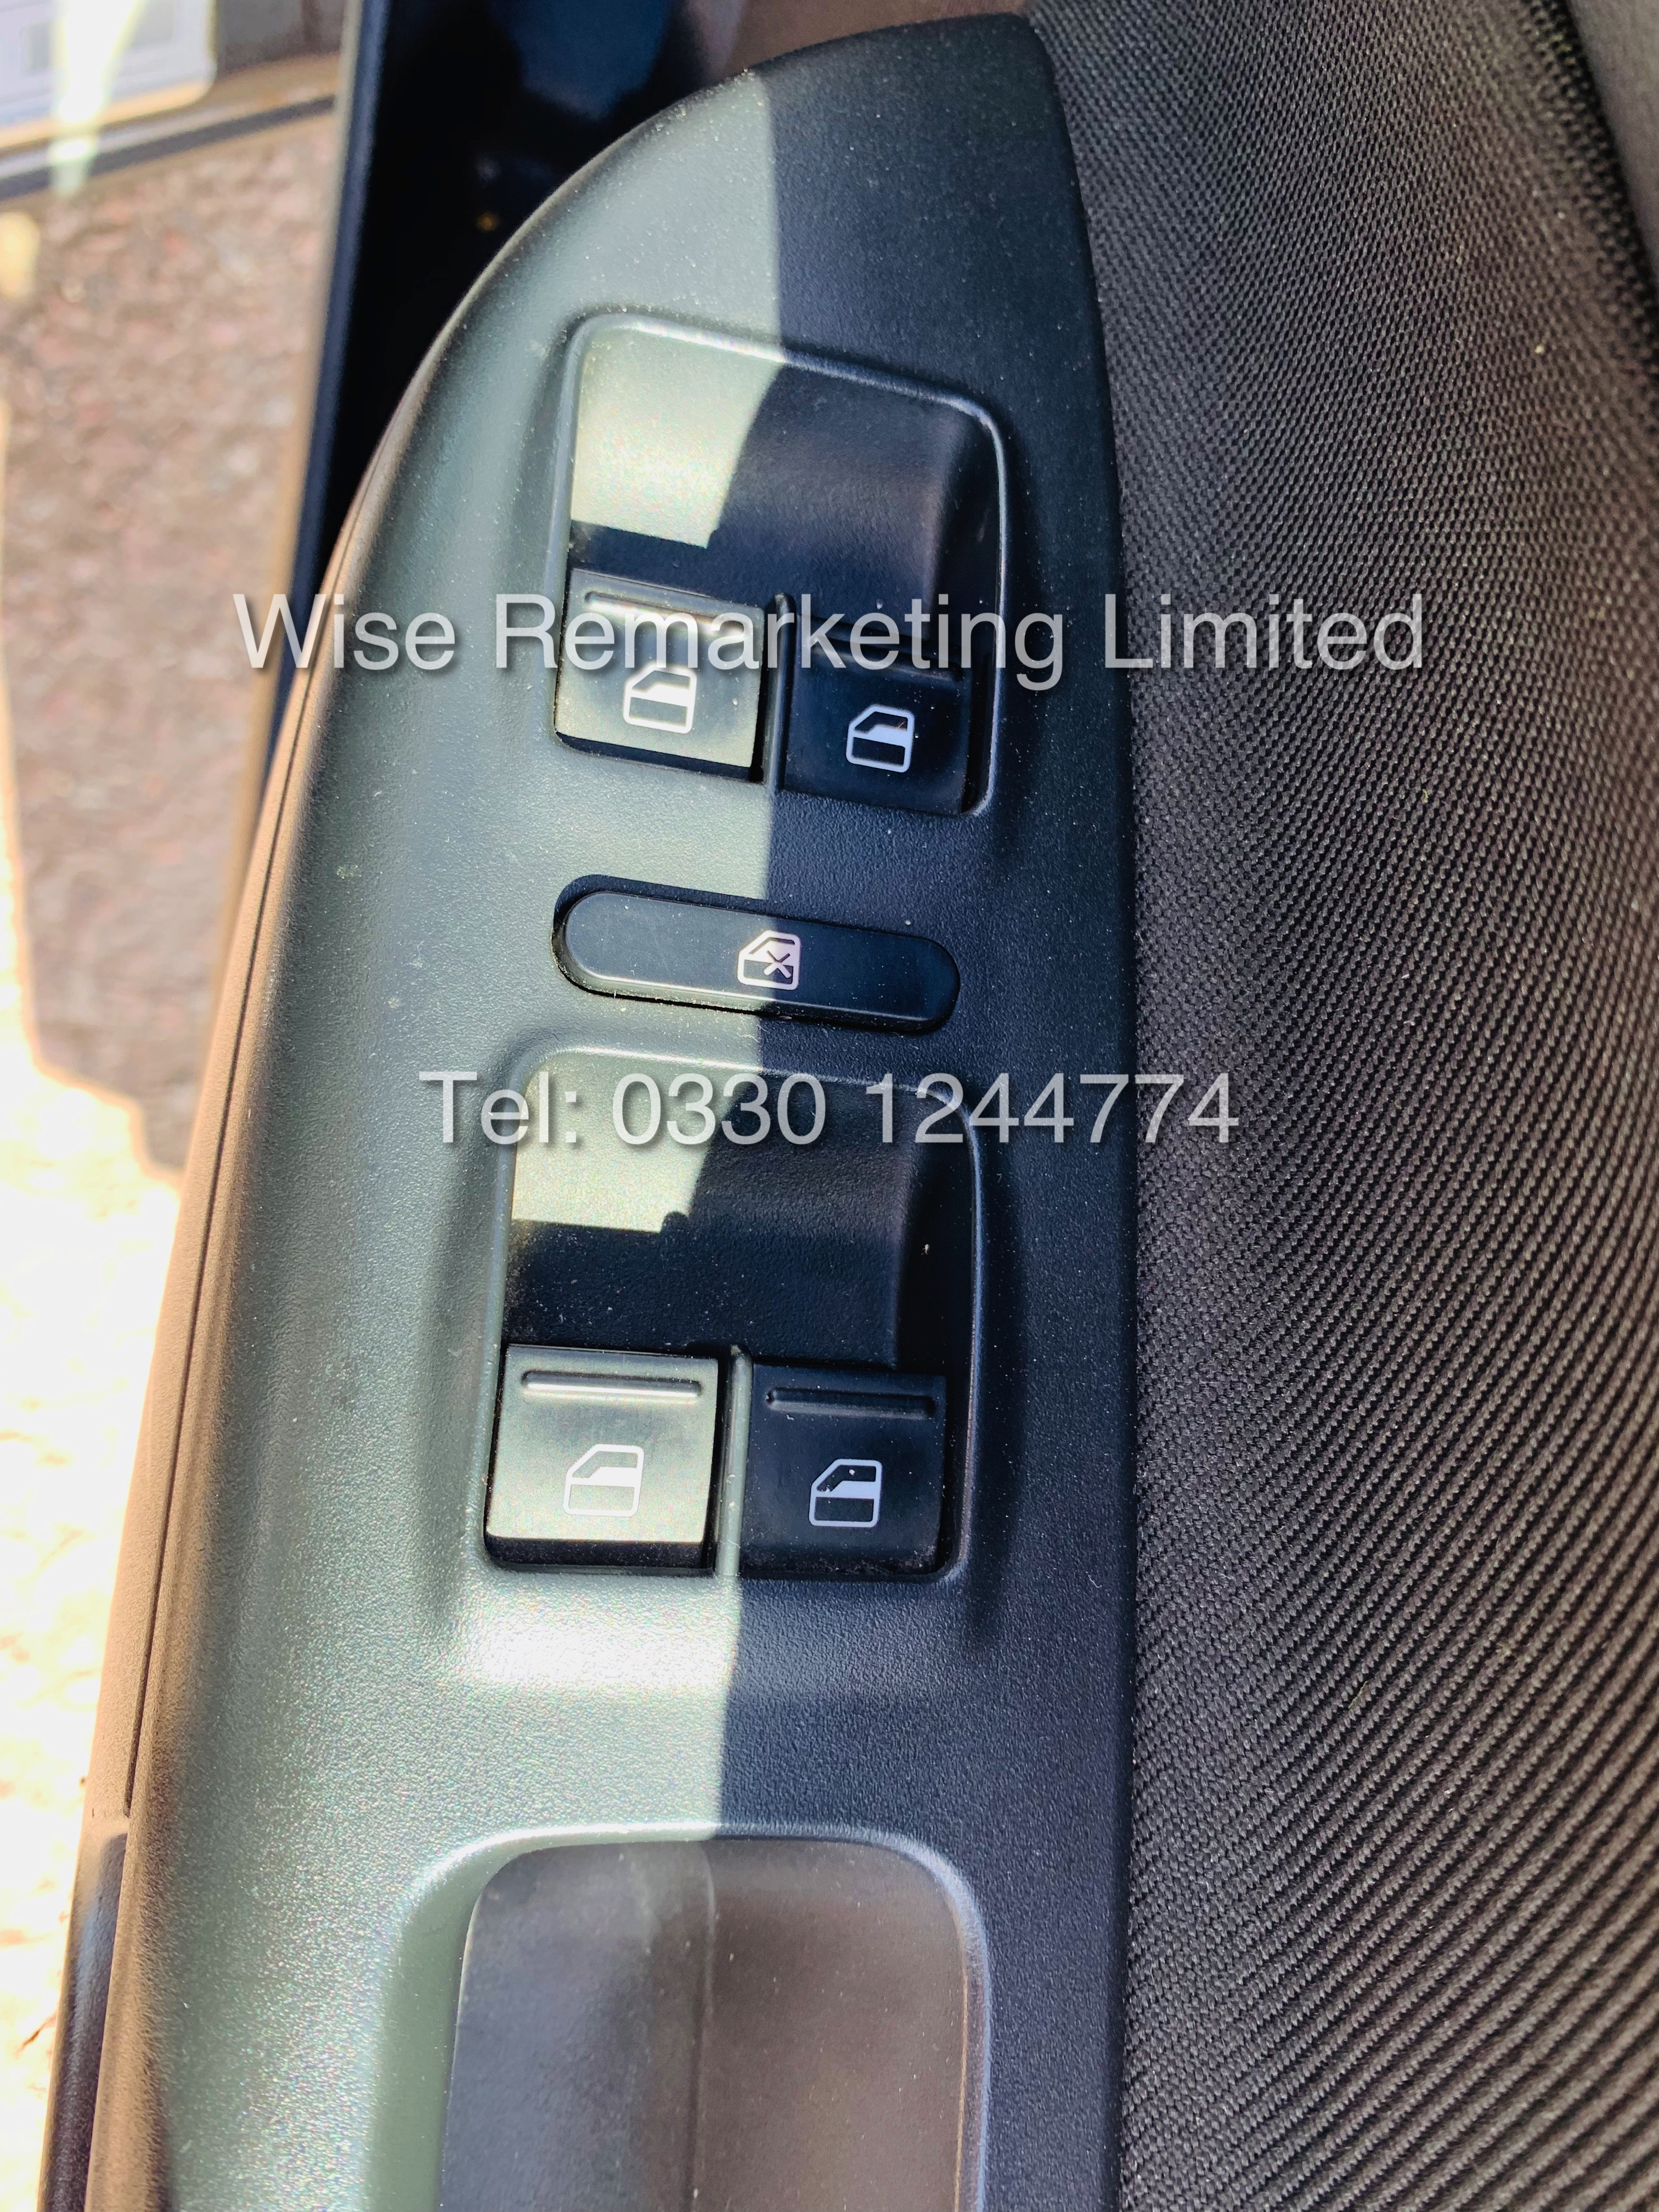 SKODA OCTAVIA (SCOUT) 2.0tdi DSG AUTOMATIC ESTATE / 2013 / 1 OWNER WITH FULL HISTORY / 140BHP / 4x4 - Image 12 of 14